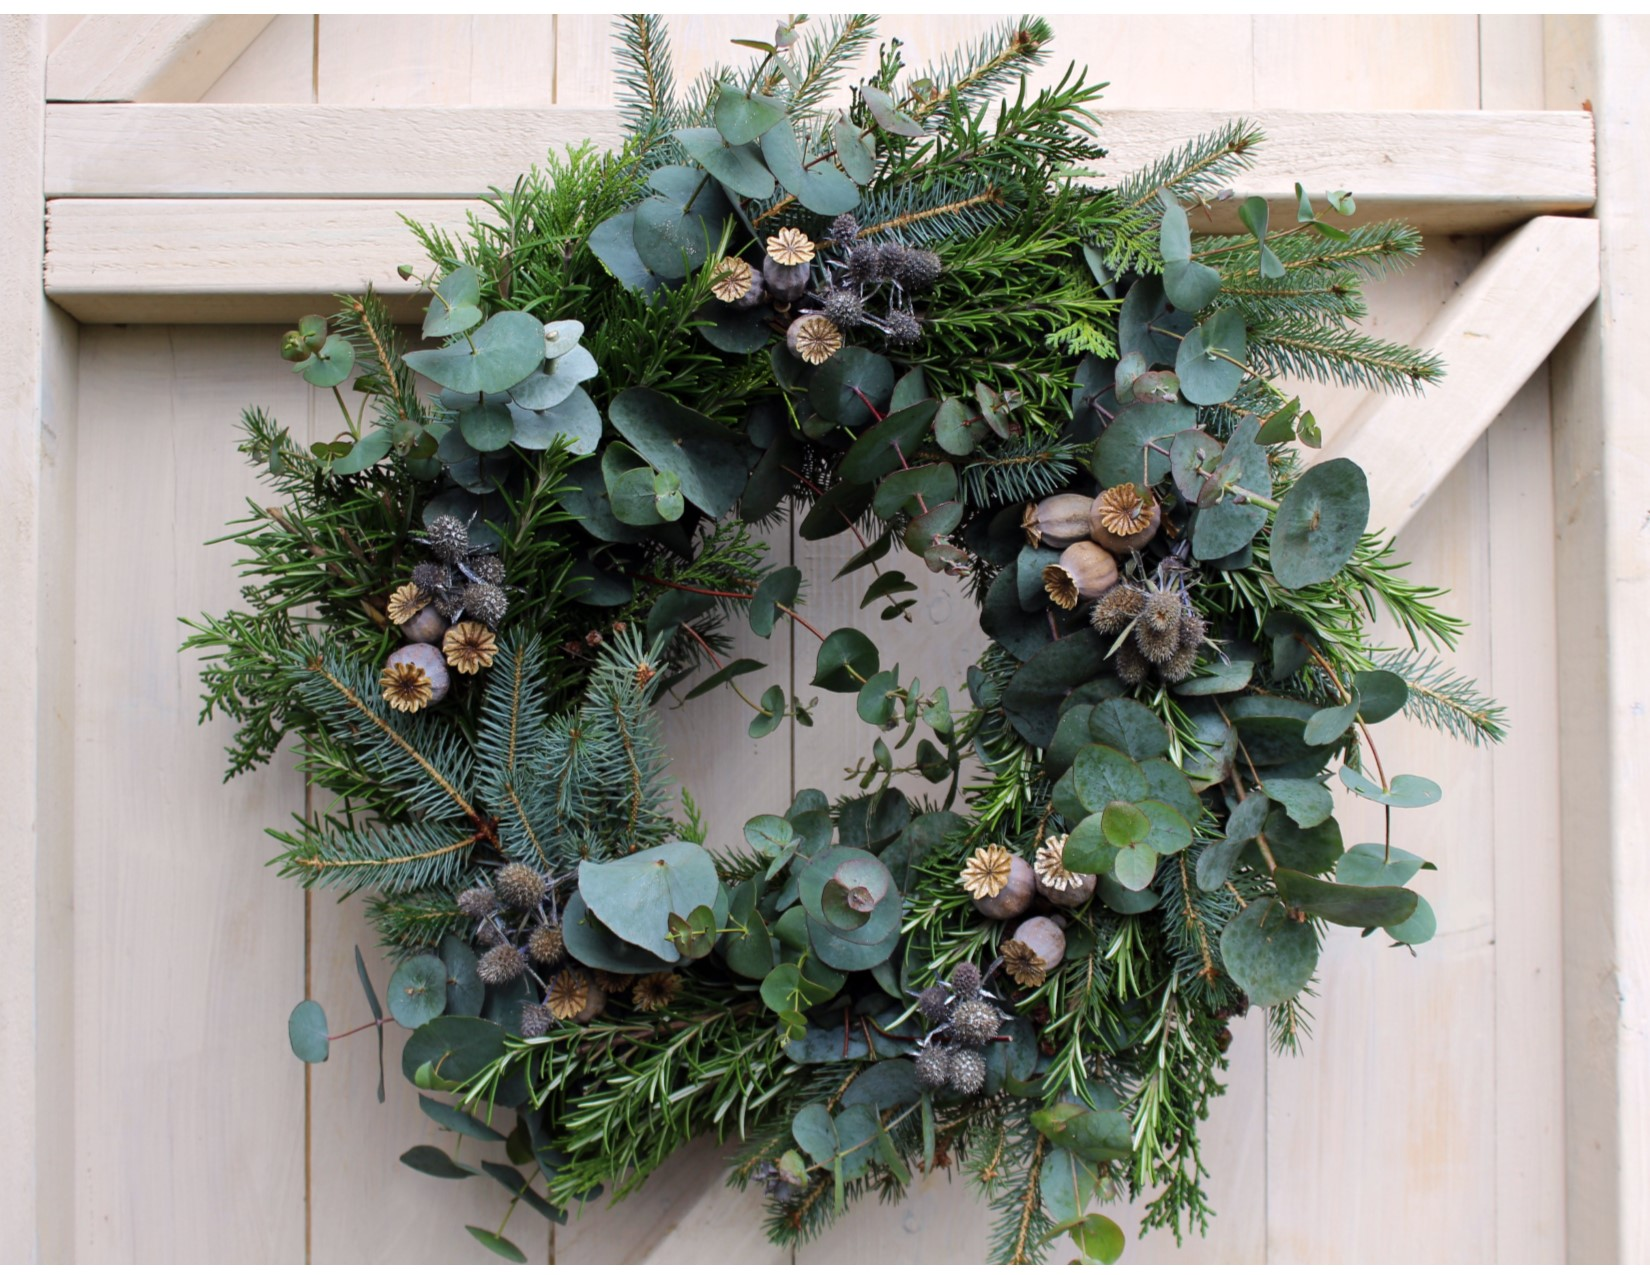 2018 Wreath Making Experience